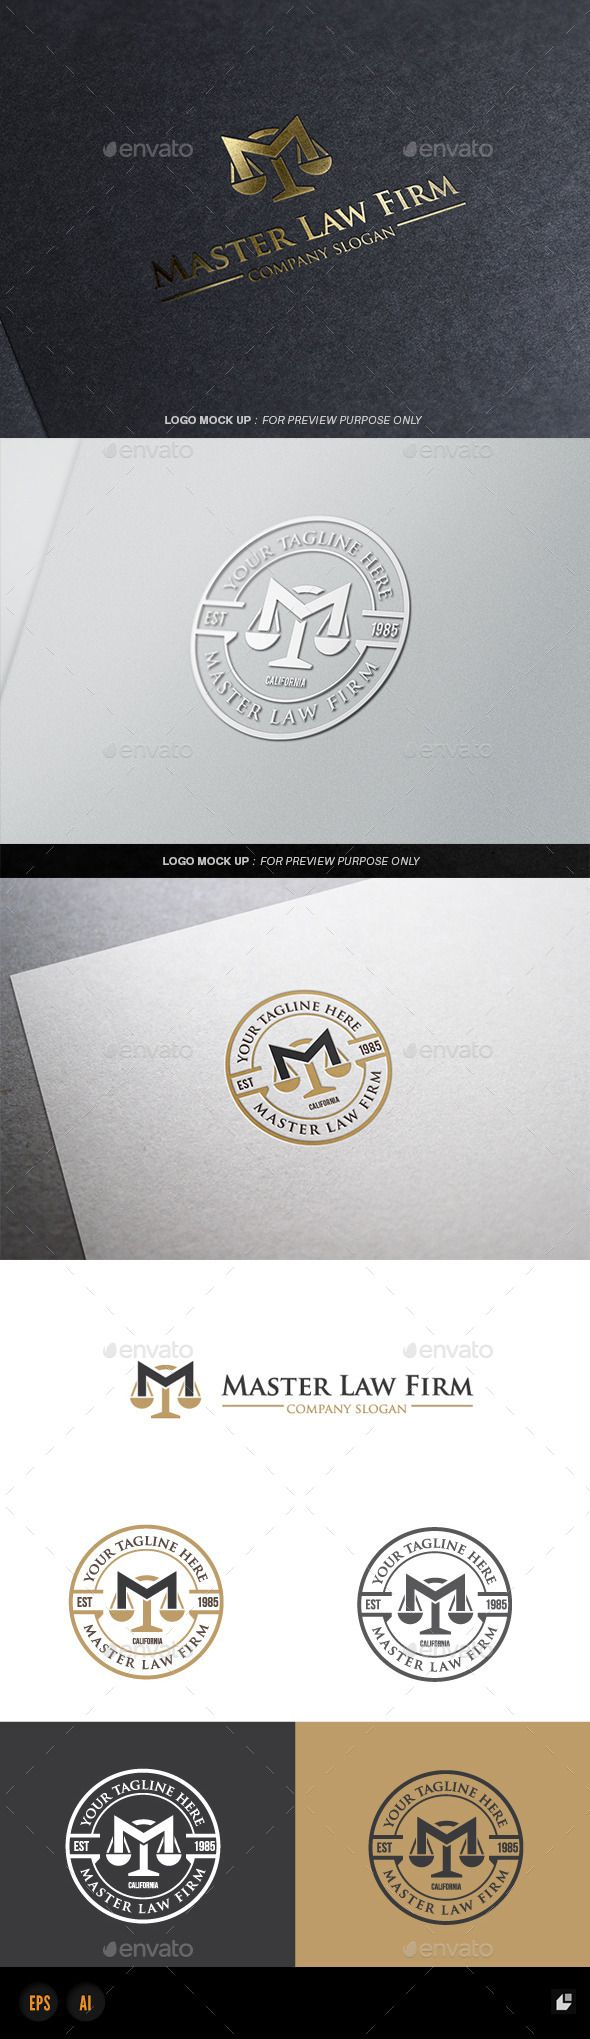 Law Firm Logo EPS Template • Download ➝ https://graphicriver.net/item/law-firm-v3/12326870?ref=pxcr